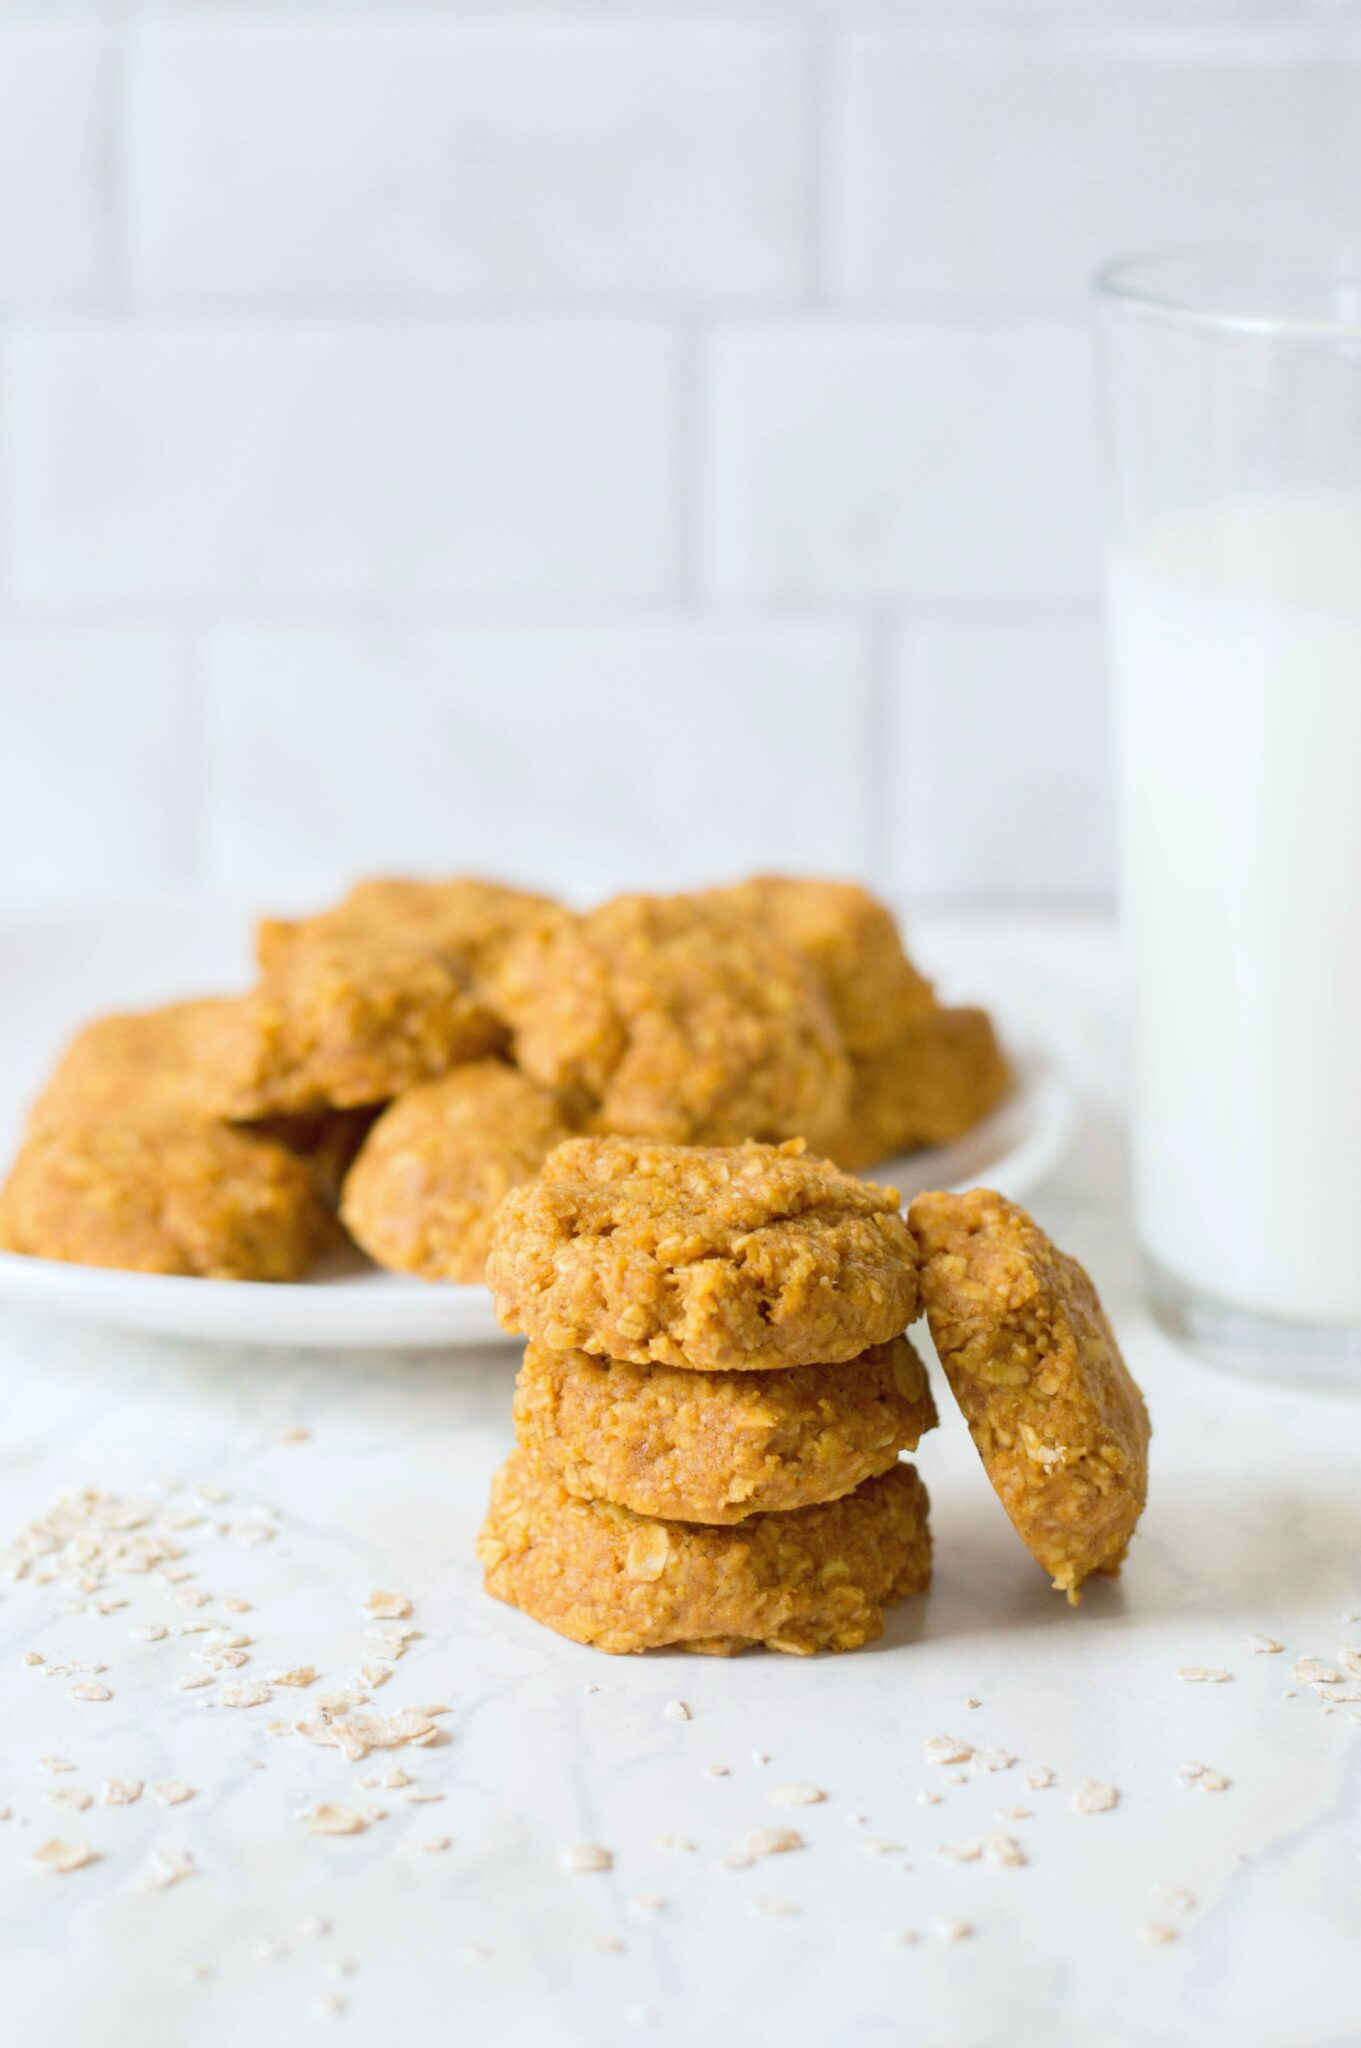 A plate of no-bake pumpkin oatmeal cookies and a stack of cookies on the side. There is a glass of milk against a white background.